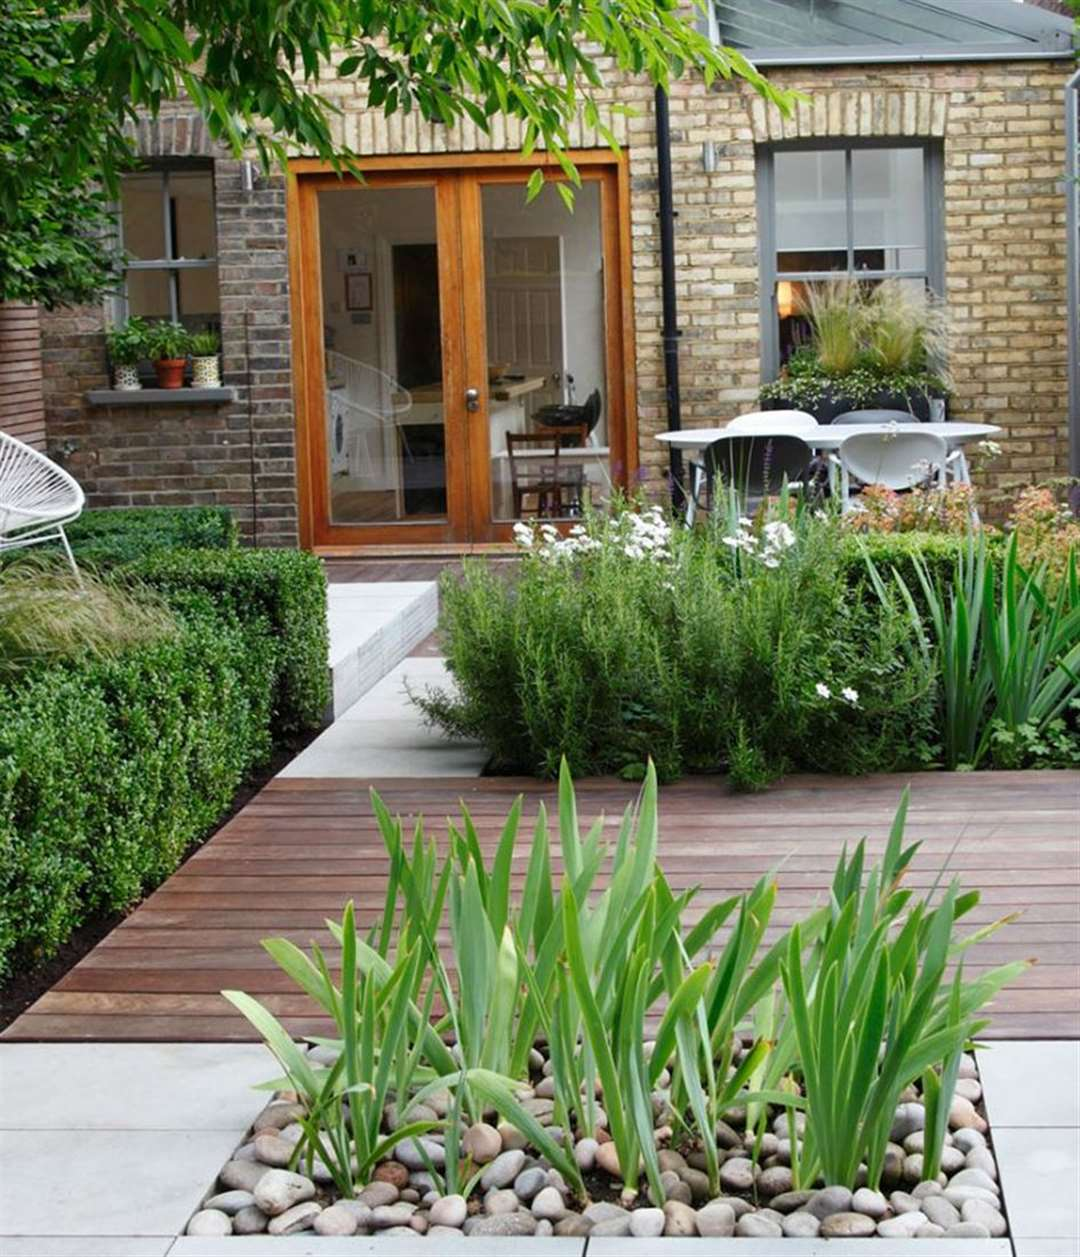 Small gardens can provide plenty of outside space.